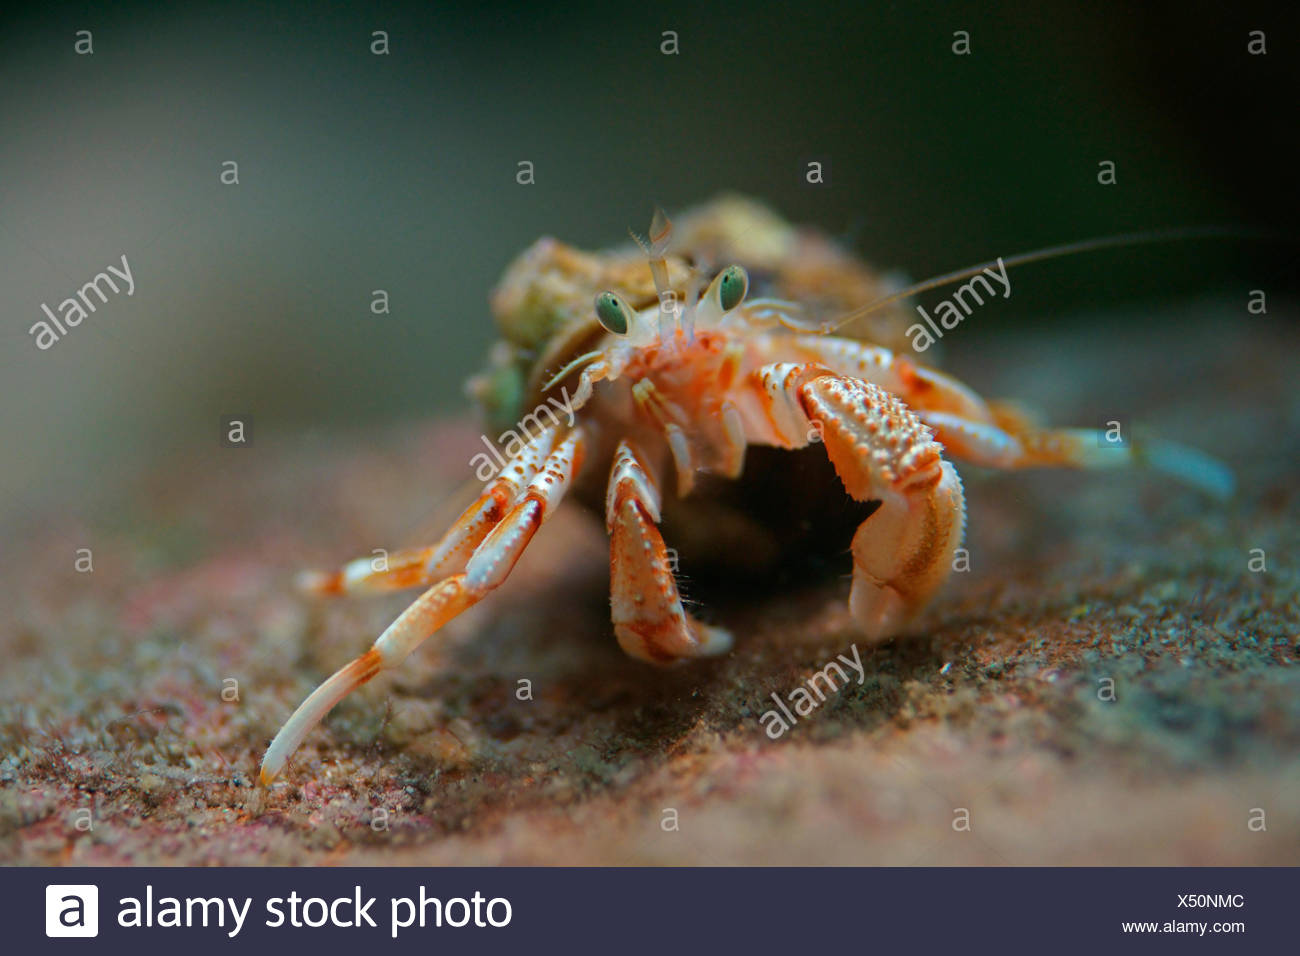 Common Hermit Crab (Pagurus bernhardus, Eupagurus bernhardus), sea water aquarium Helgoland, Schleswig-Holstein, Germany - Stock Image